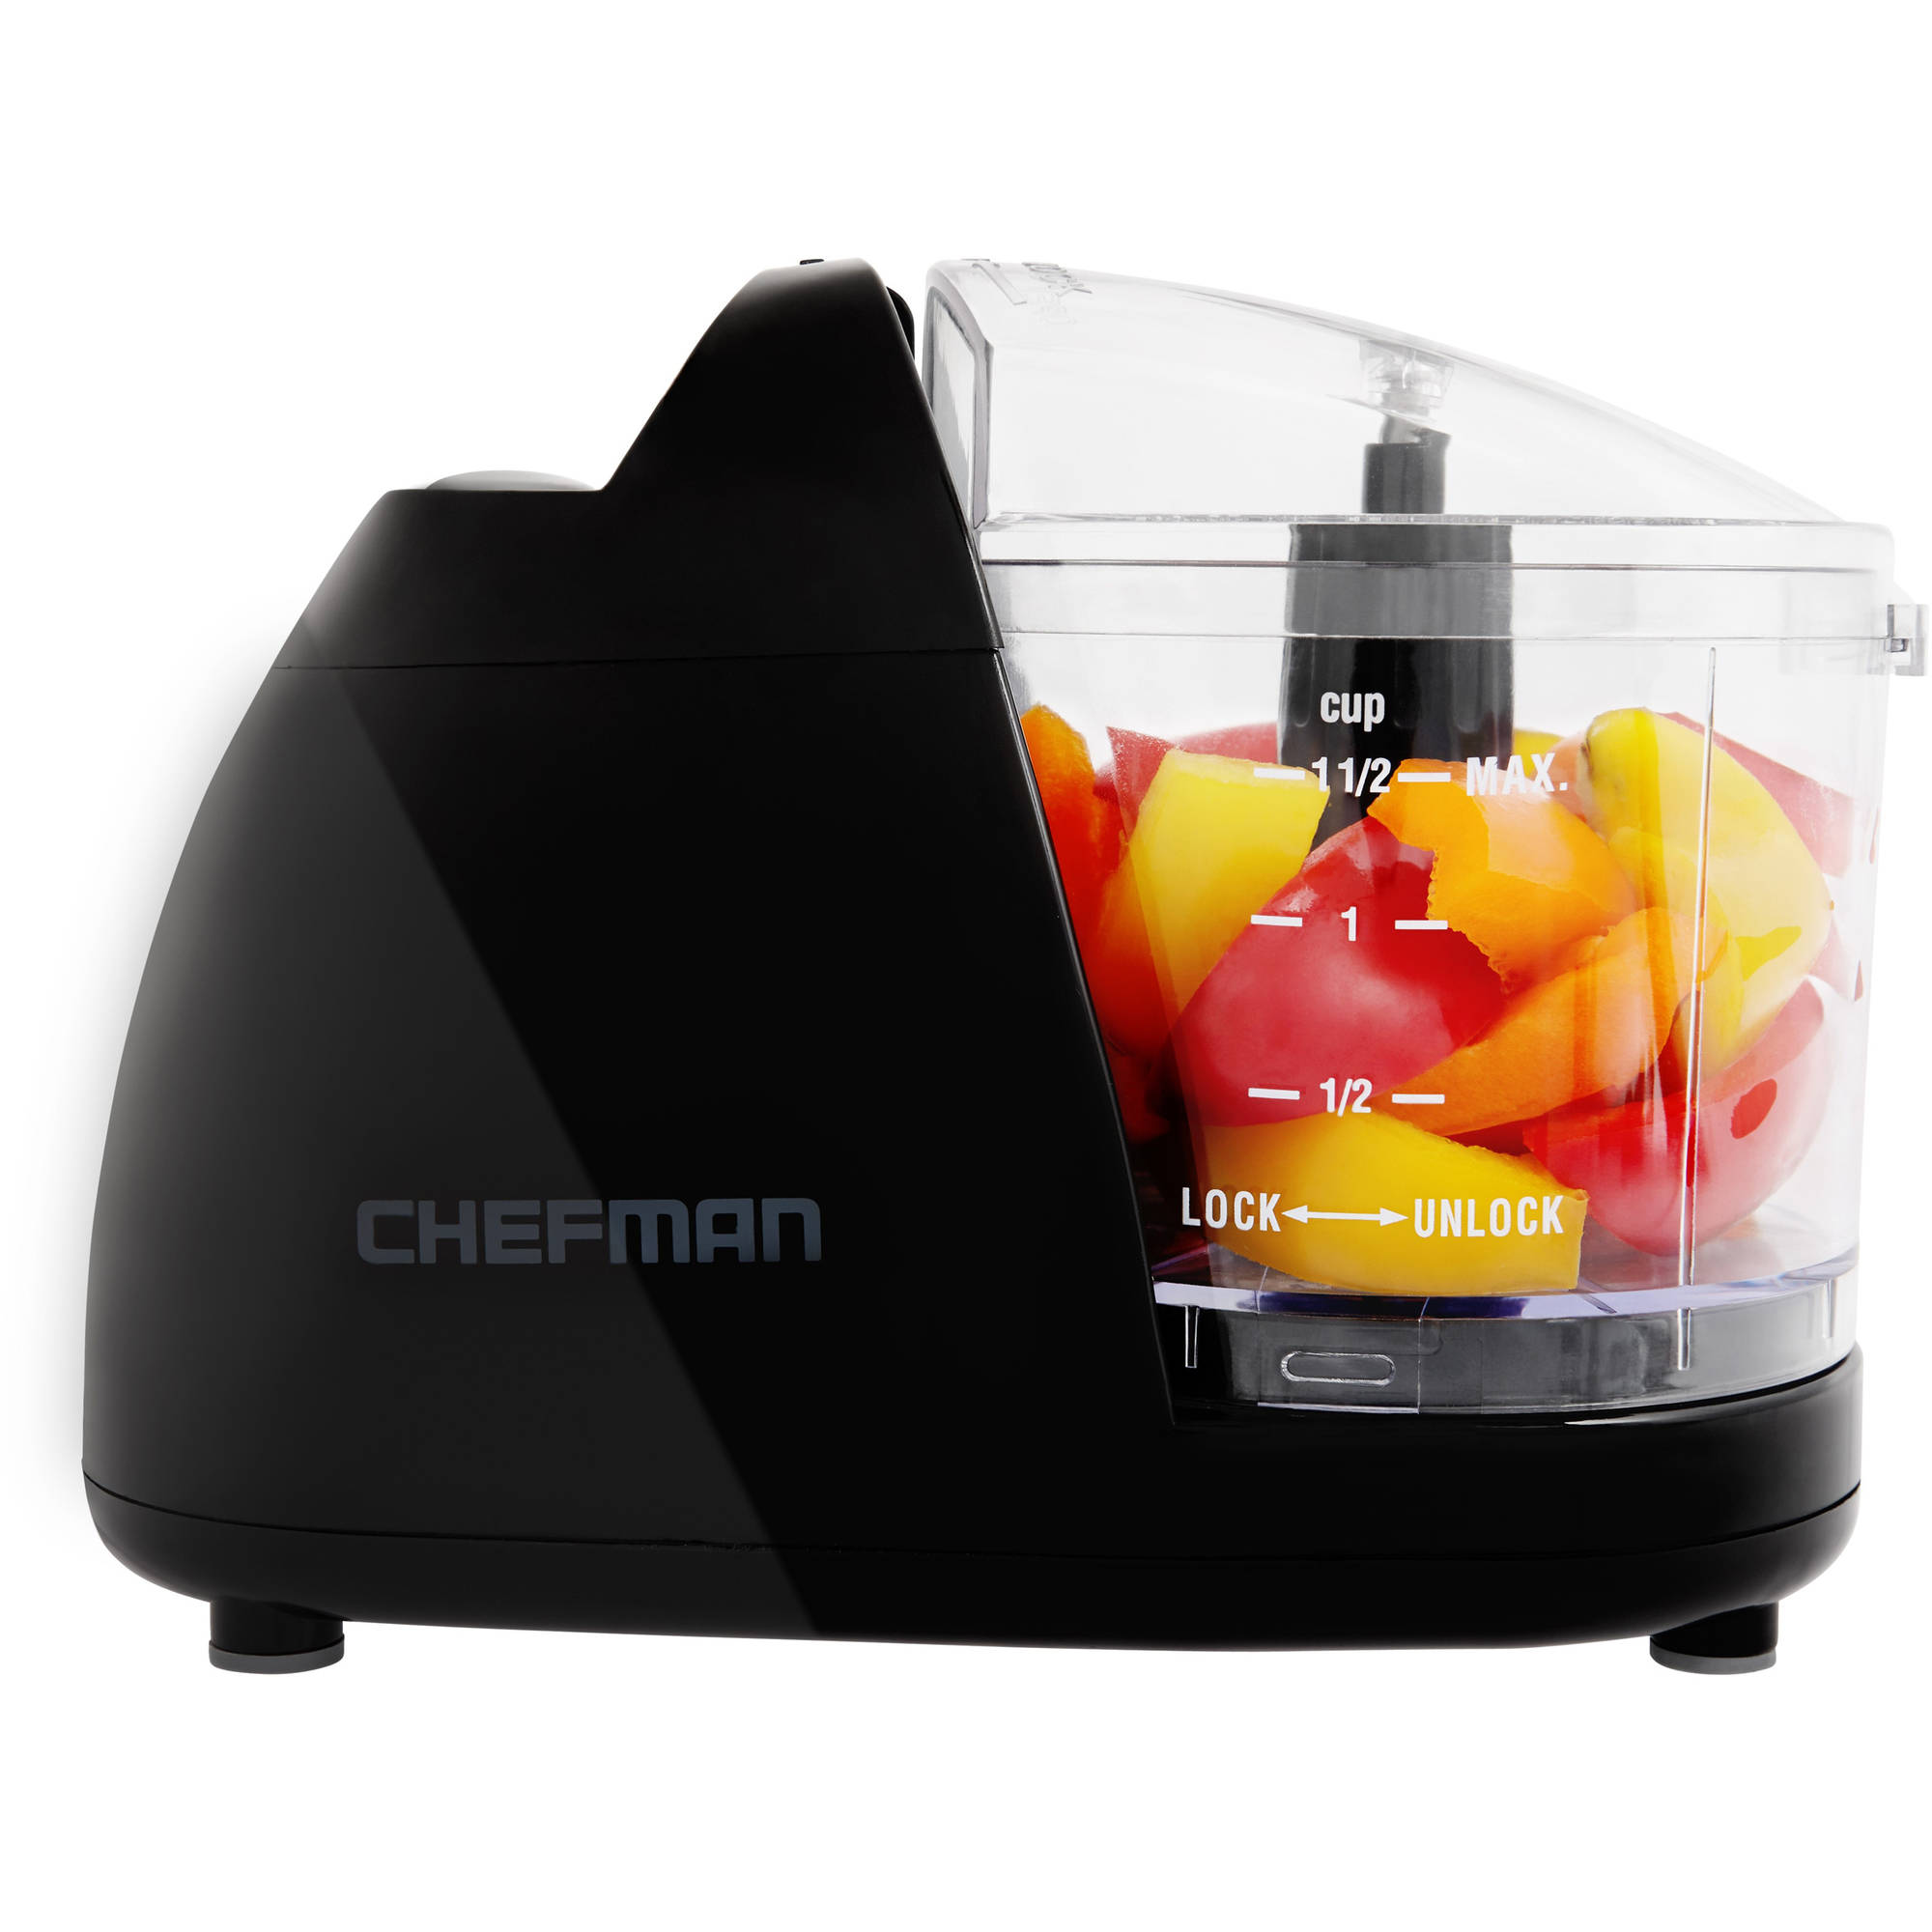 Chefman 1.5 Cup Food Chopper